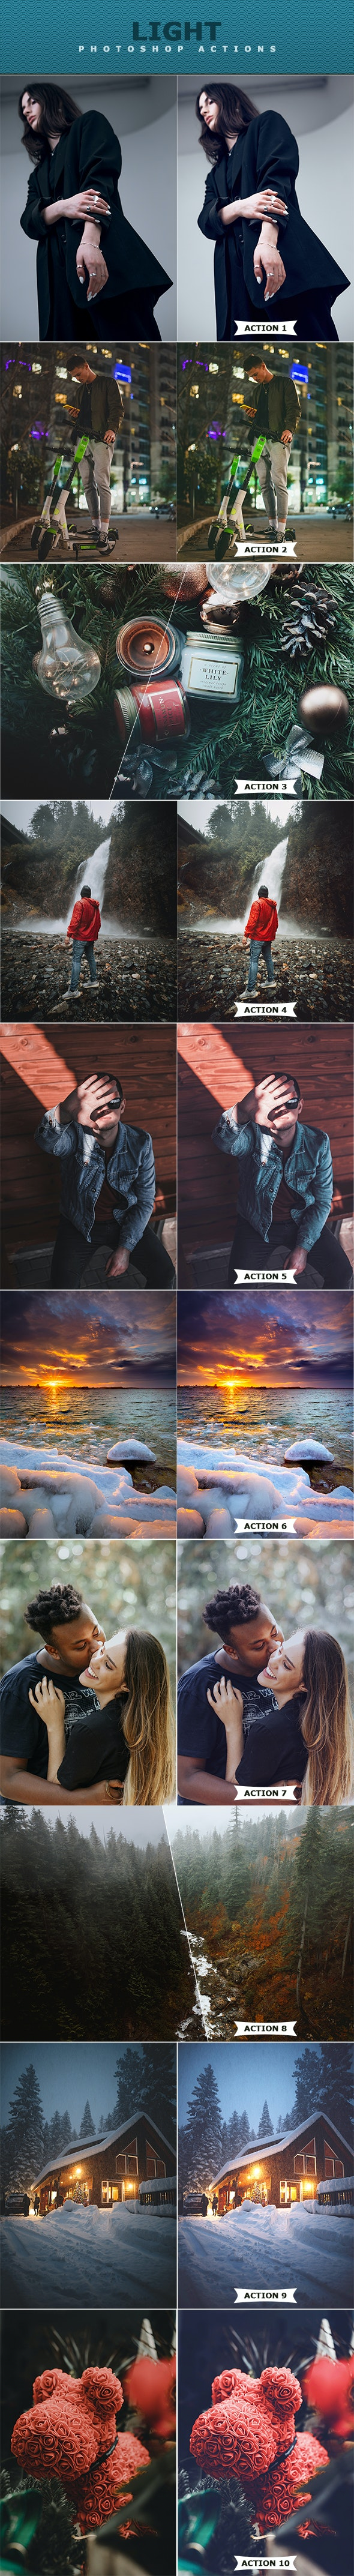 Light Photoshop Action - Photo Effects Actions